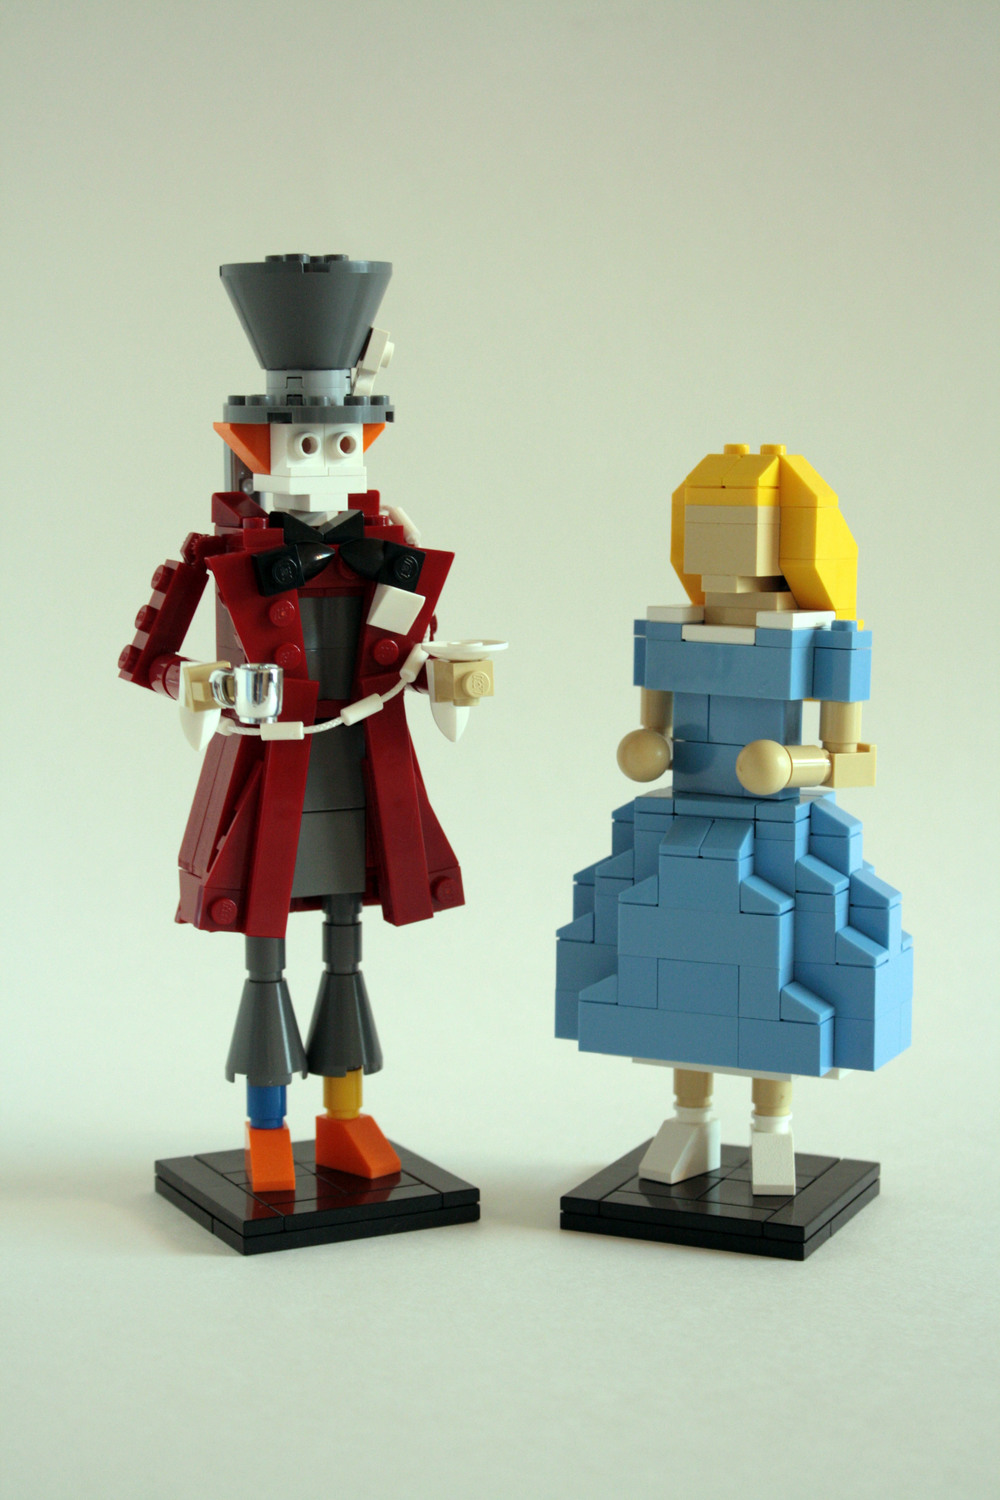 Alice and Hatter